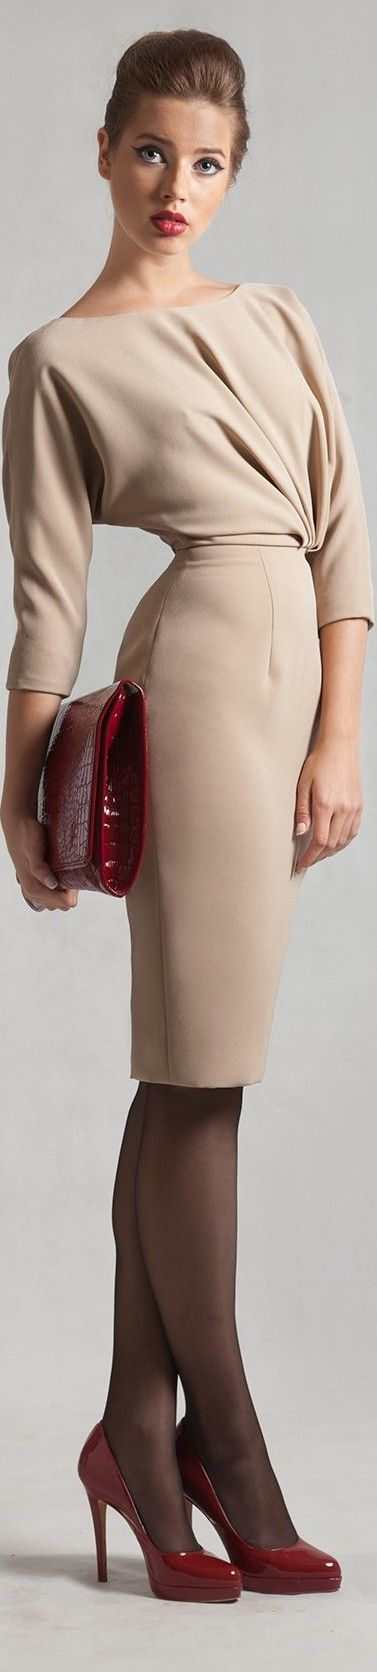 Business outfit for women 12